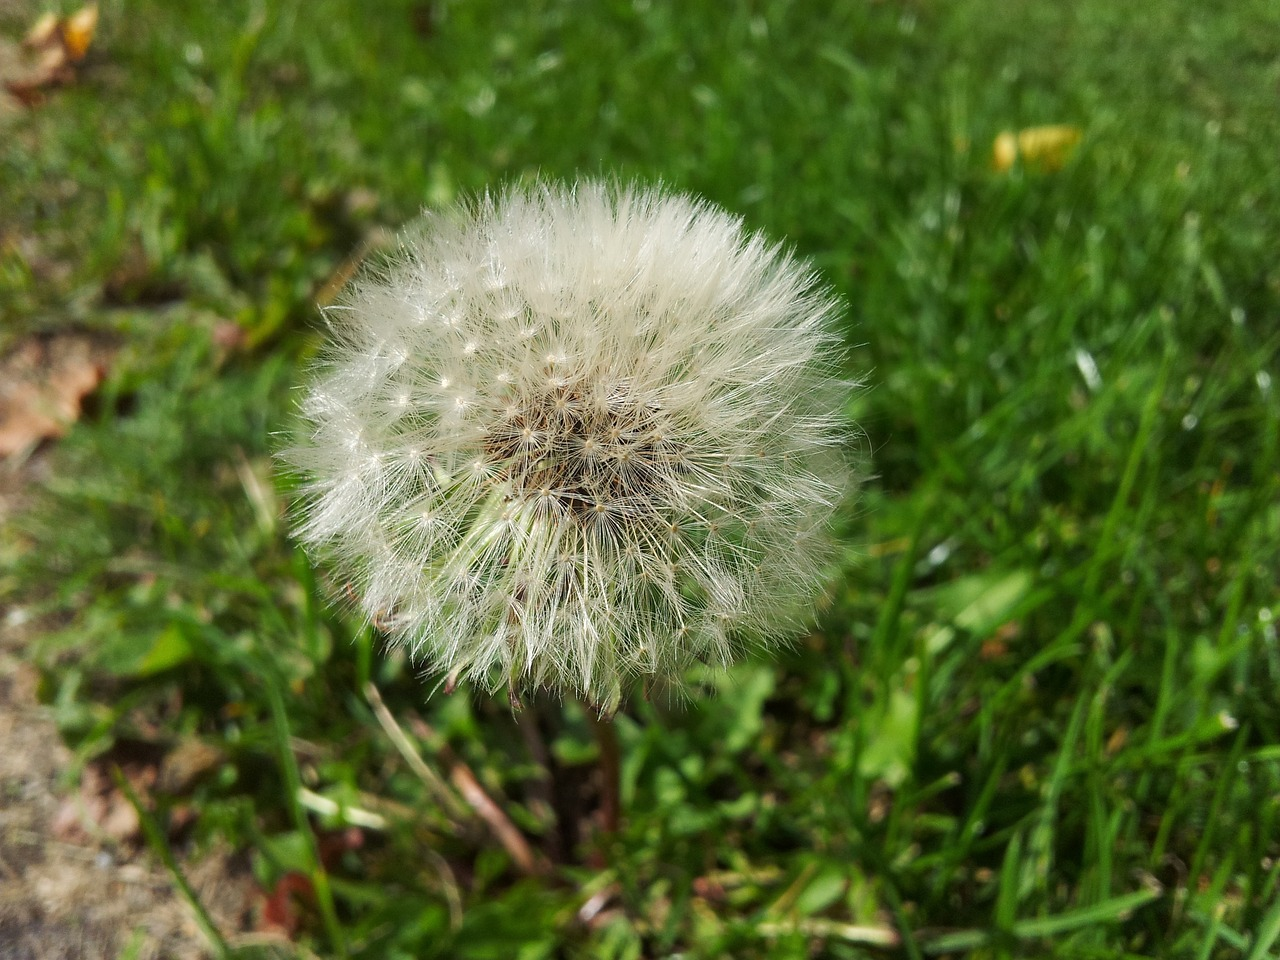 dandelion,late summer,summer,plant,plants,flower,nature,garden,forest,grass,green,summer flowers,flowers,swedish summer,white,white flower,bed,country,free pictures, free photos, free images, royalty free, free illustrations, public domain